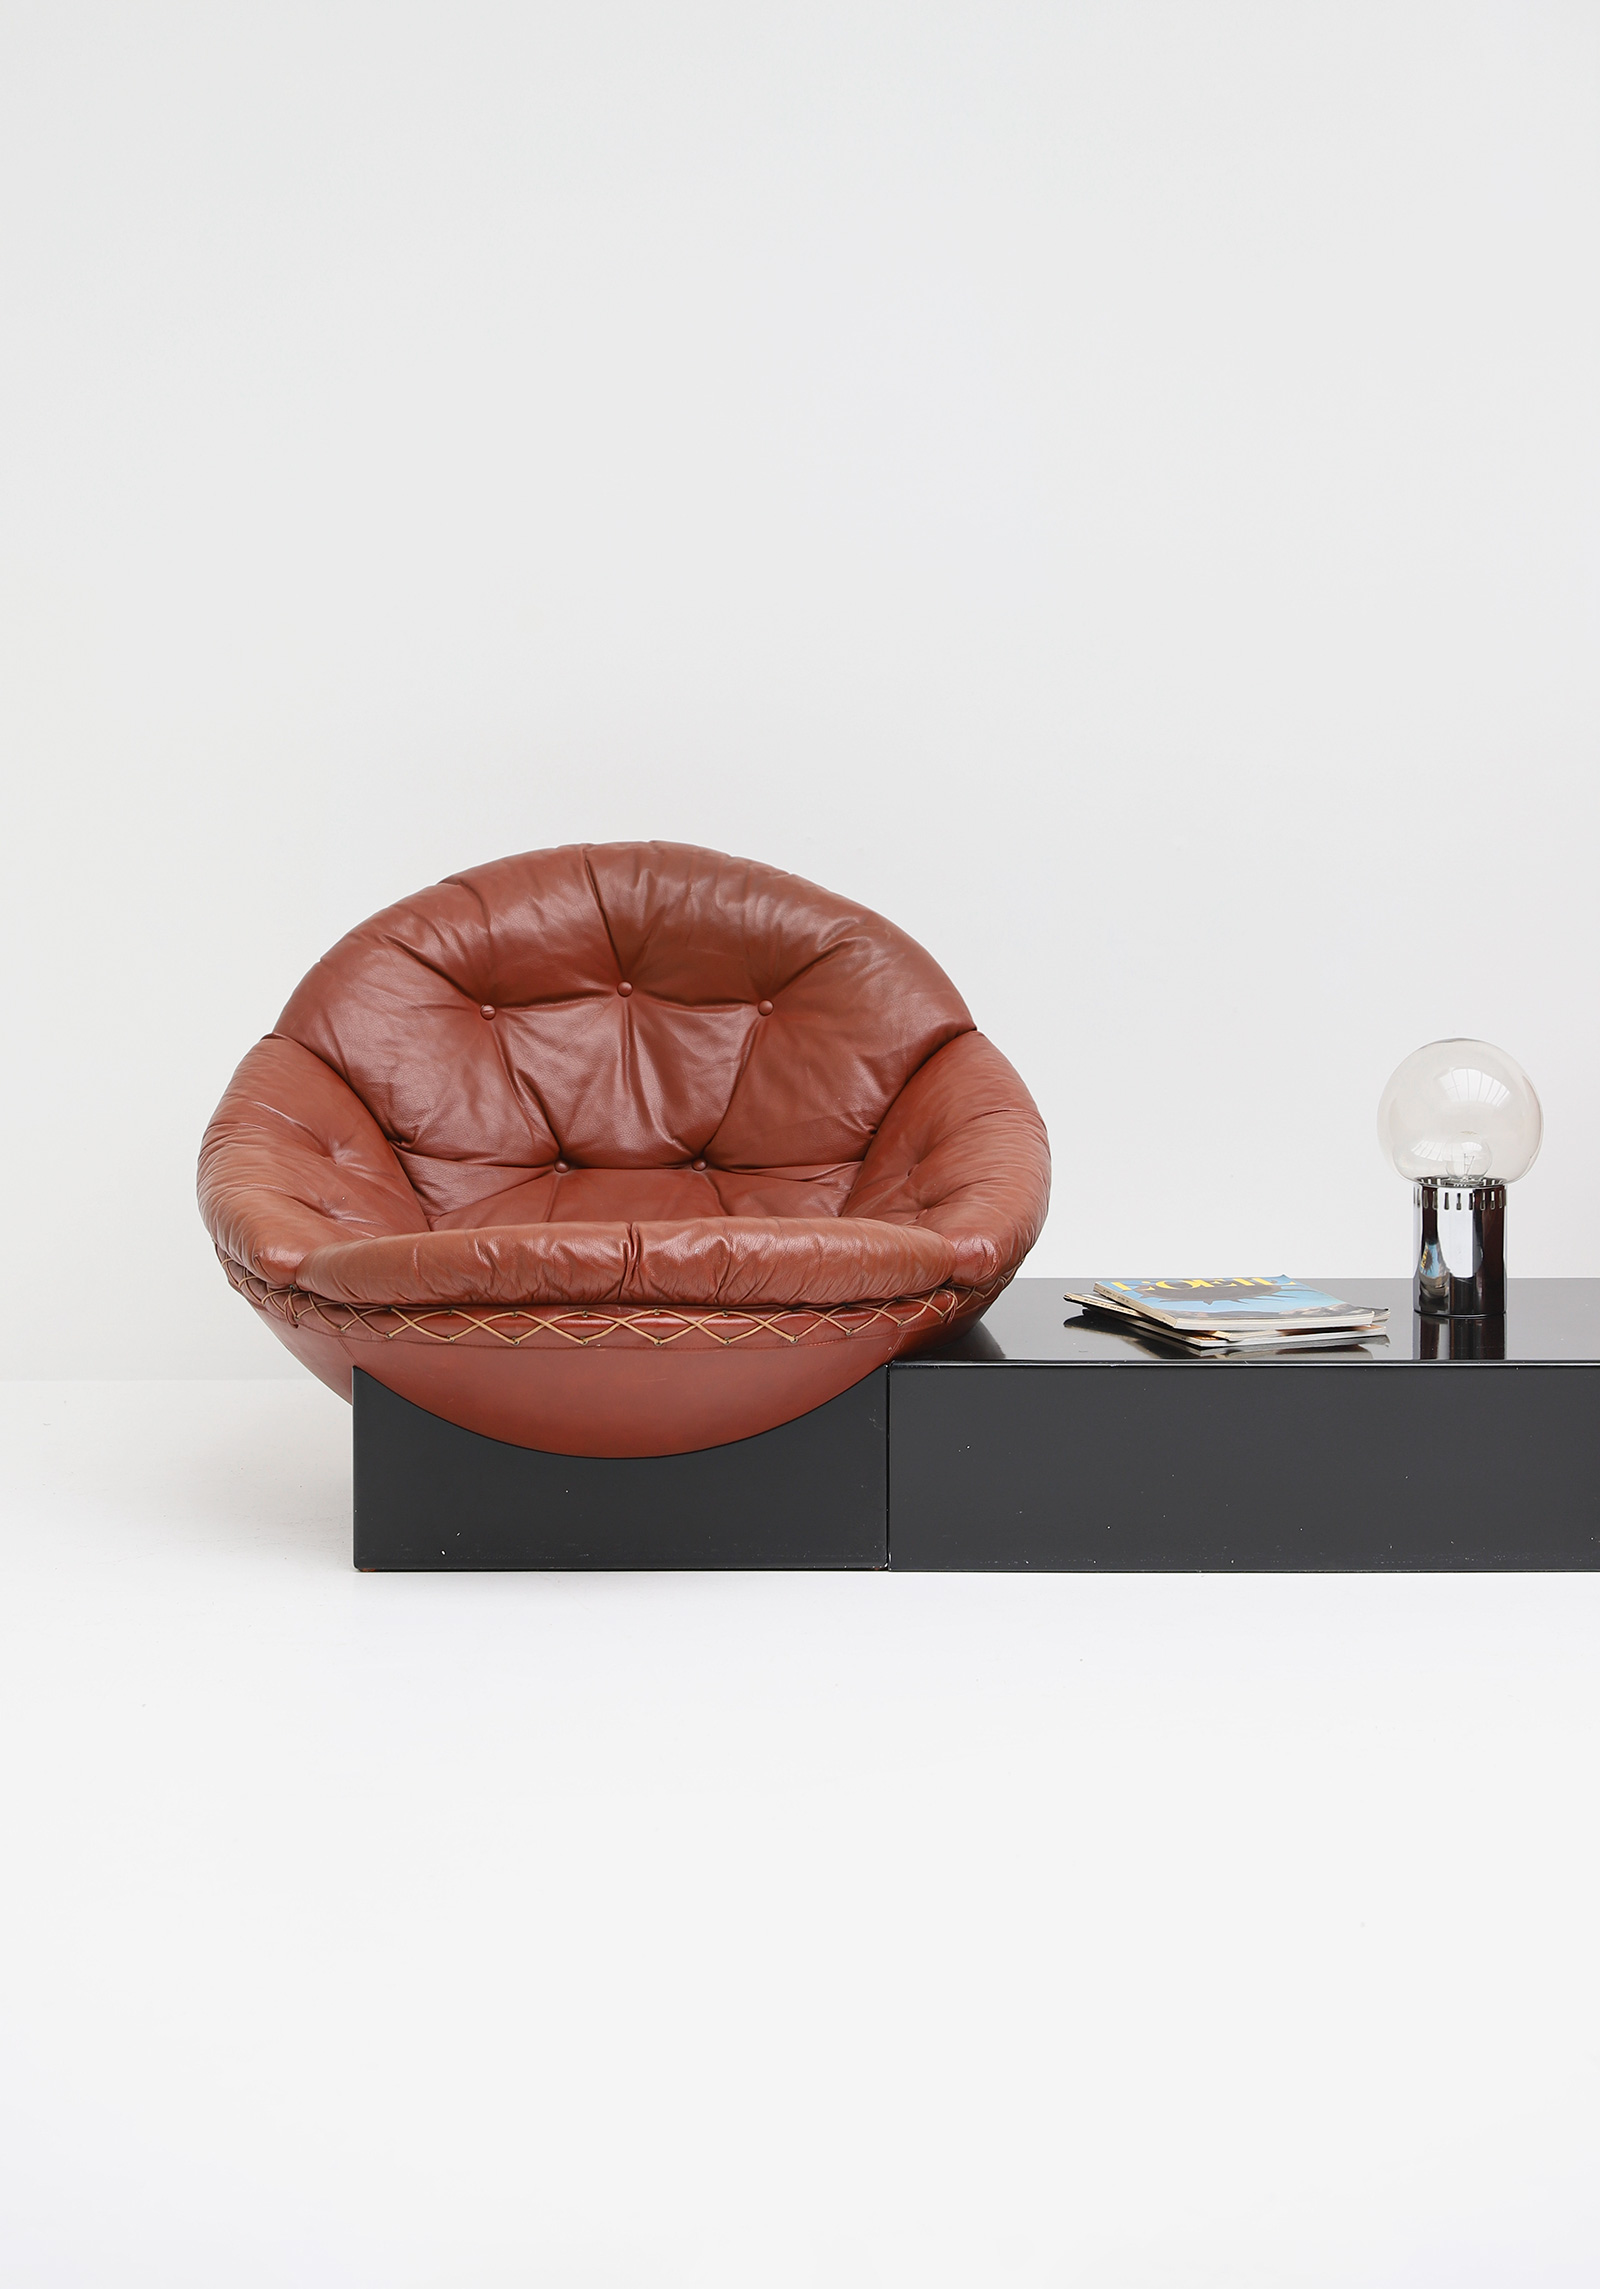 Leather Lounge Chairs by Illum Wikkelso for Ryesberg 1970simage 2